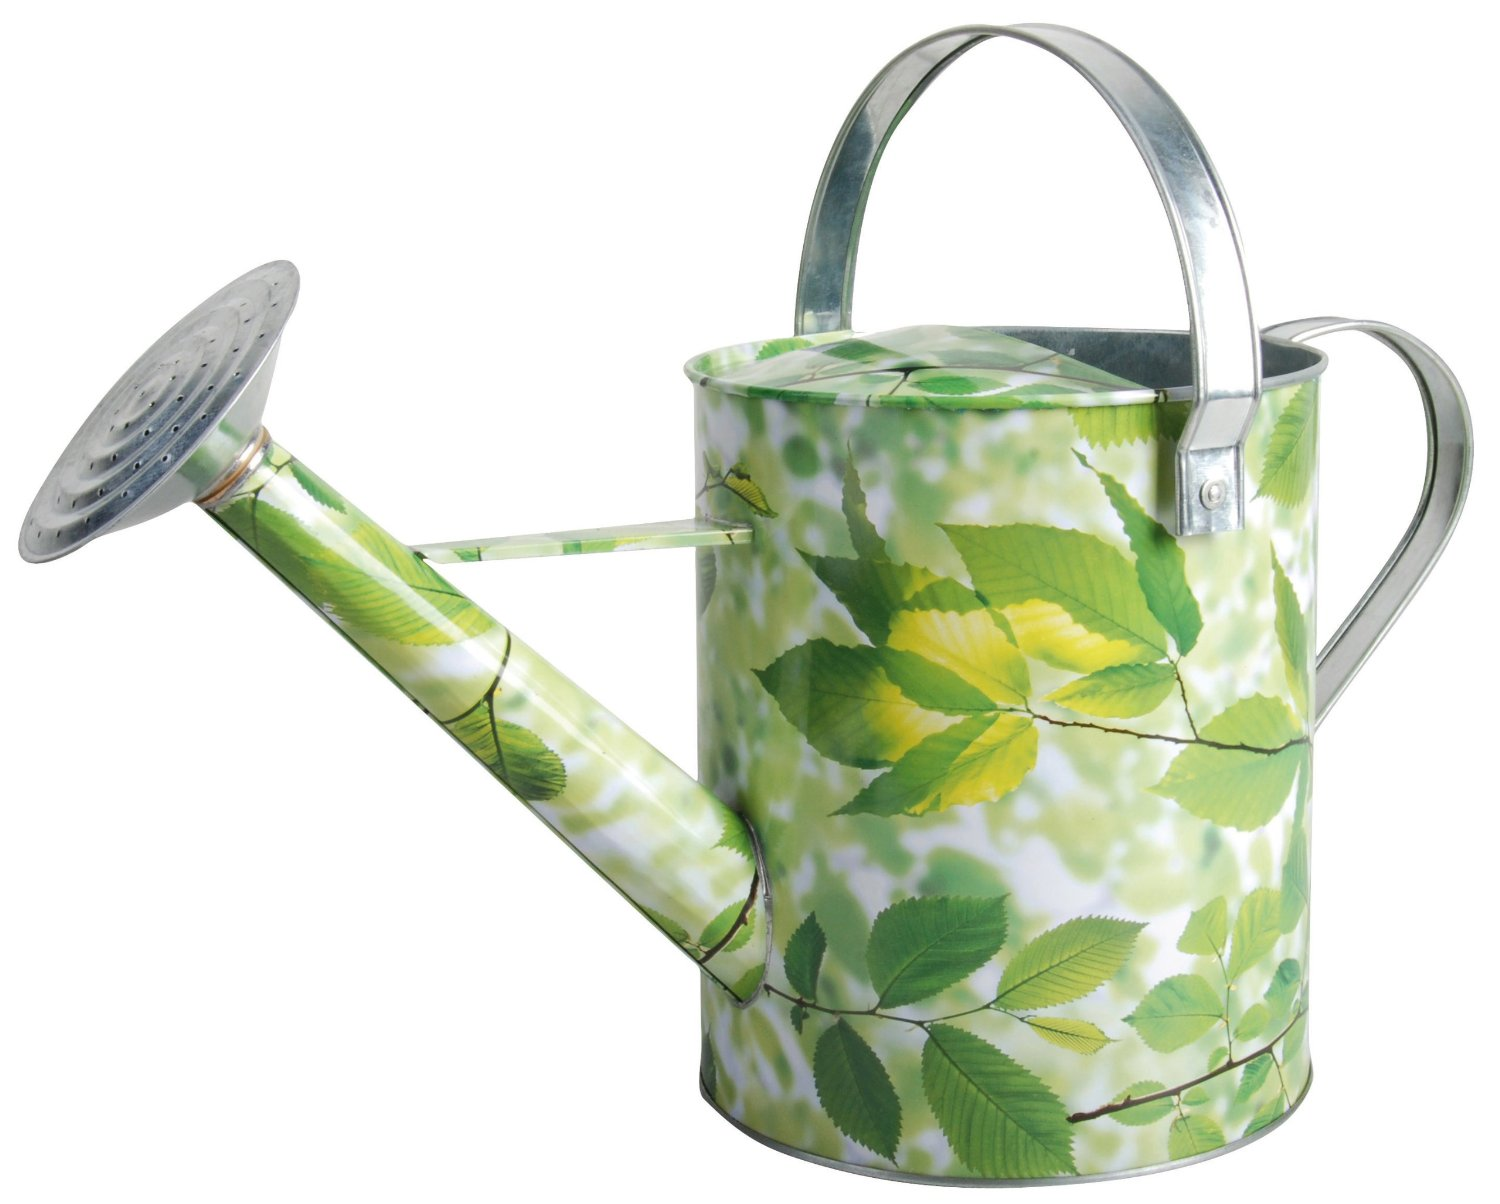 Green leaf watering can gardening nirvana - Sprinkling cans ...